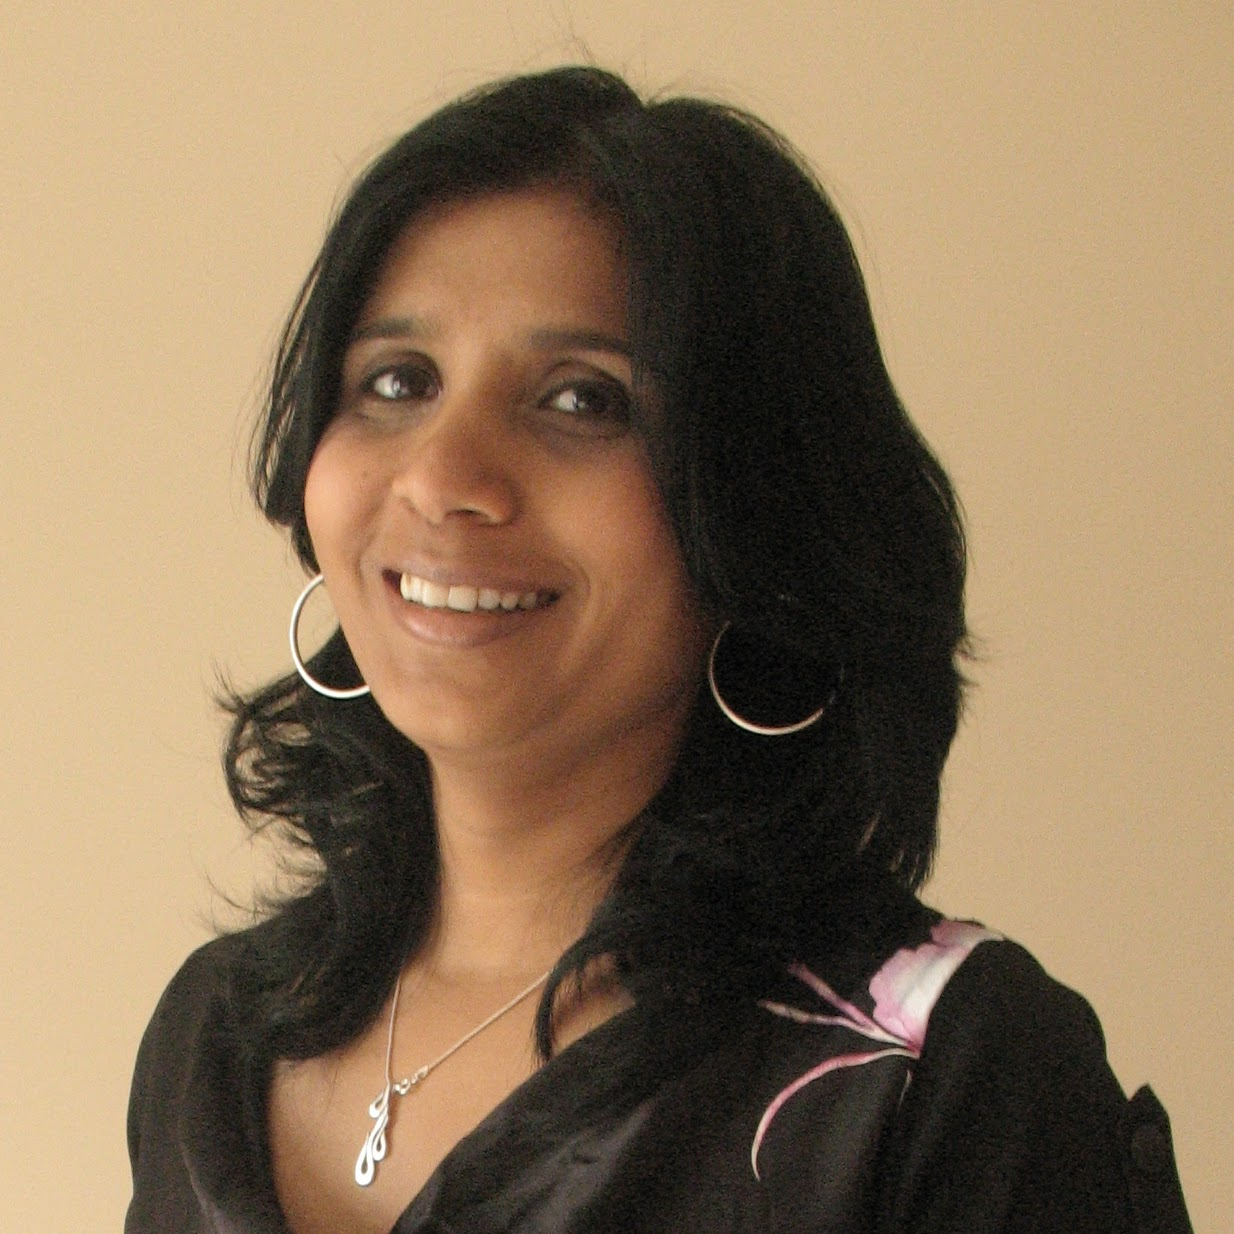 rashmi sinha discover follow a world of rashmi sinha discover follow a world of compelling voices